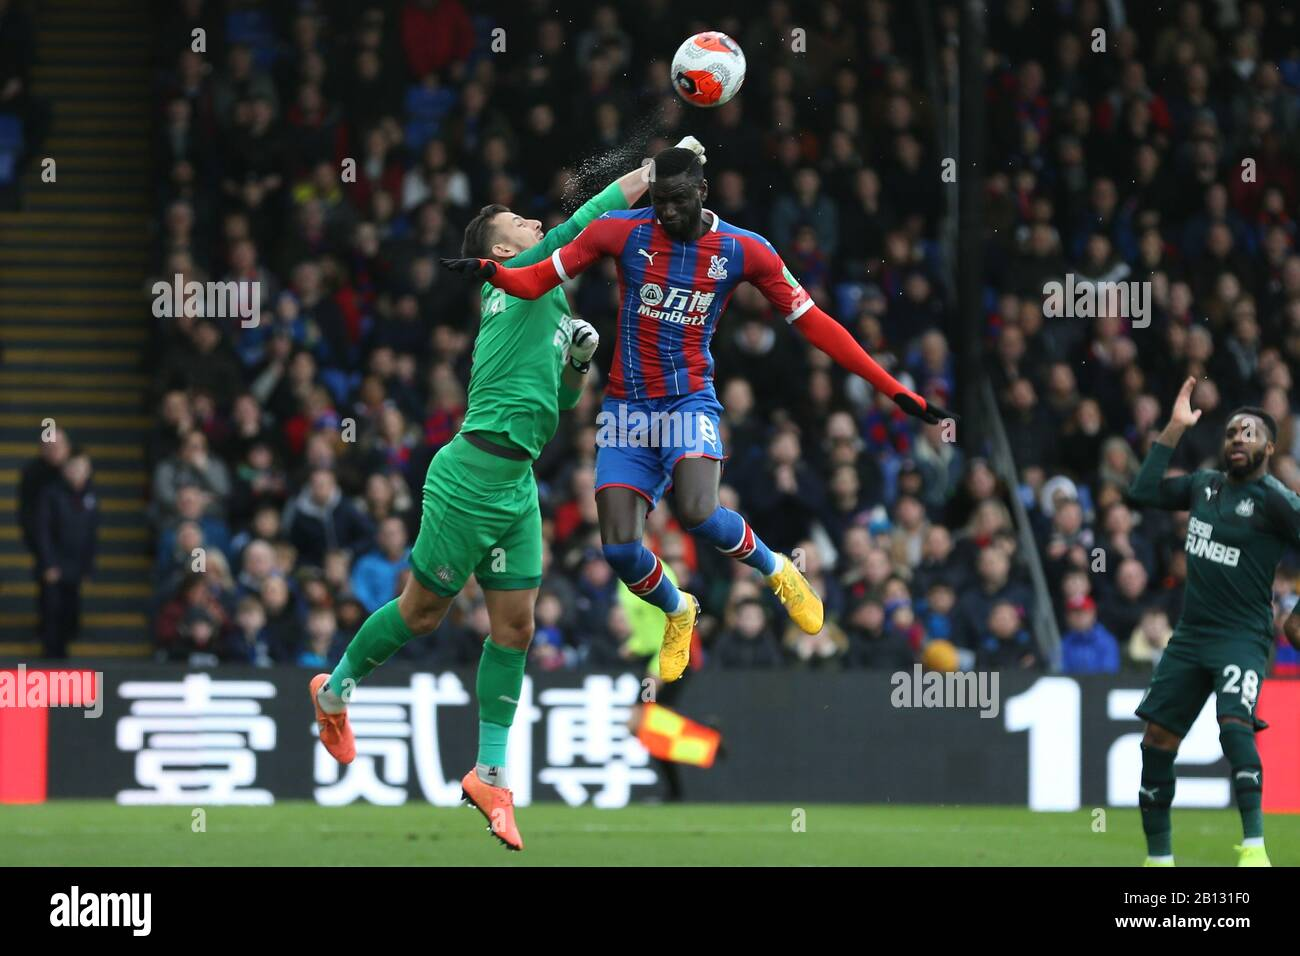 London, UK. 22nd Feb, 2020.  Martin Dubravka of Newcastle United and Cheikhou Kouyate of Crystal Palace jumping for the ball during the Premier League match between Crystal Palace and Newcastle United at Selhurst Park, London on Saturday 22nd February 2020. (Credit: Jacques Feeney | MI News) Photograph may only be used for newspaper and/or magazine editorial purposes, license required for commercial use Credit: MI News & Sport /Alamy Live News Stock Photo